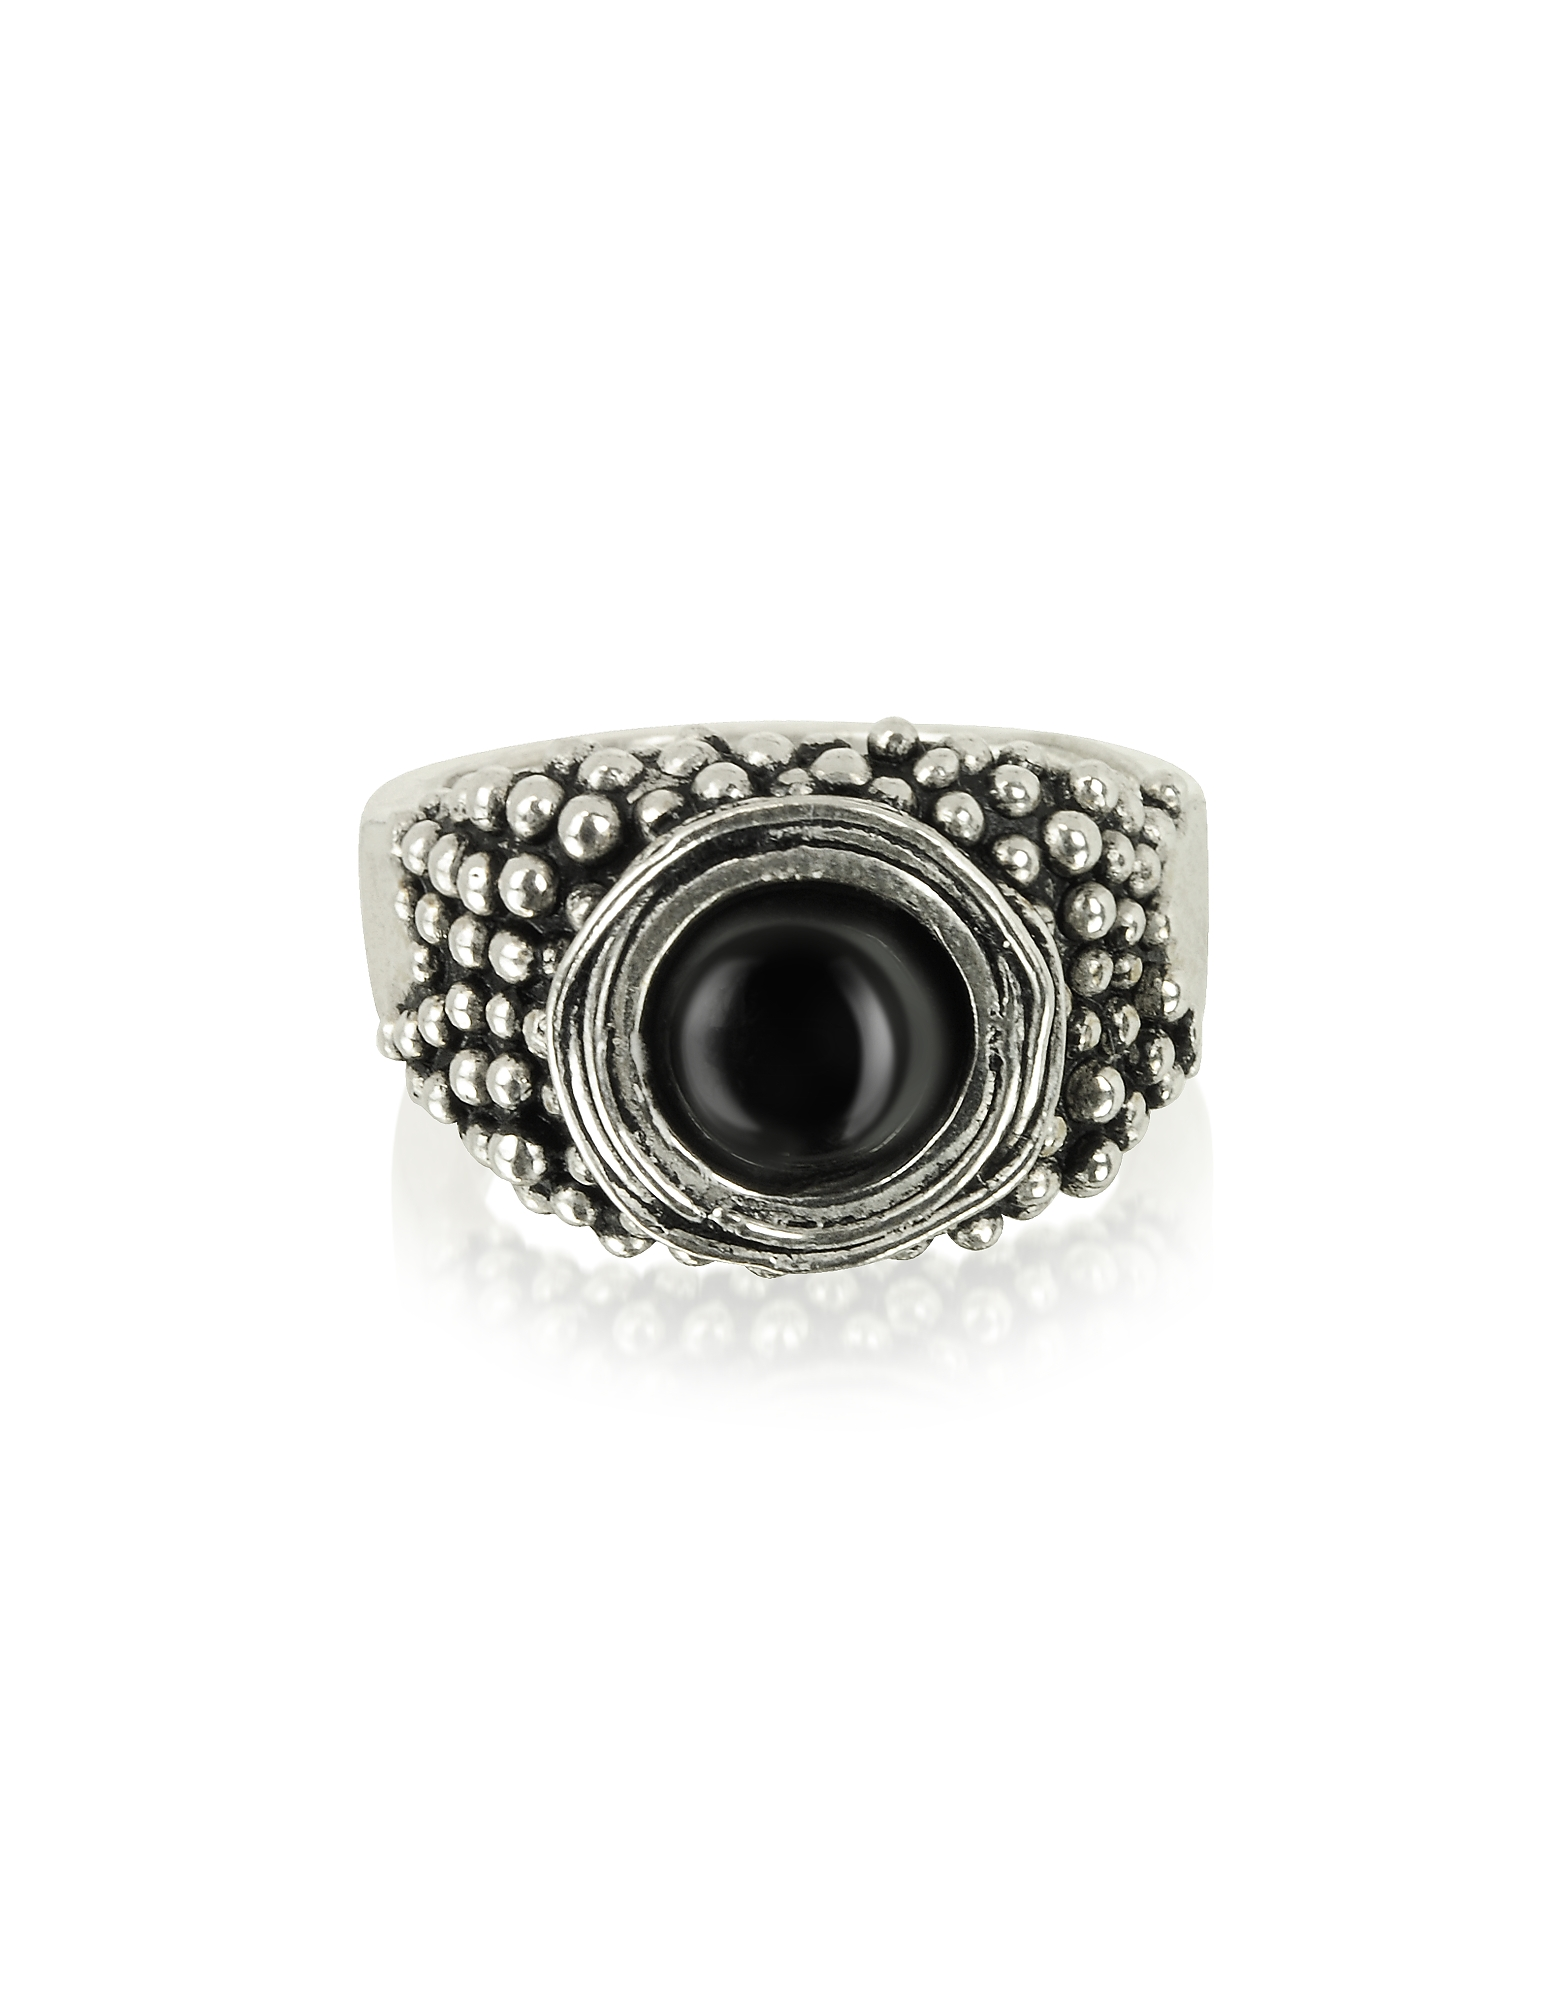 Sterling Silver Ring w/Onyx